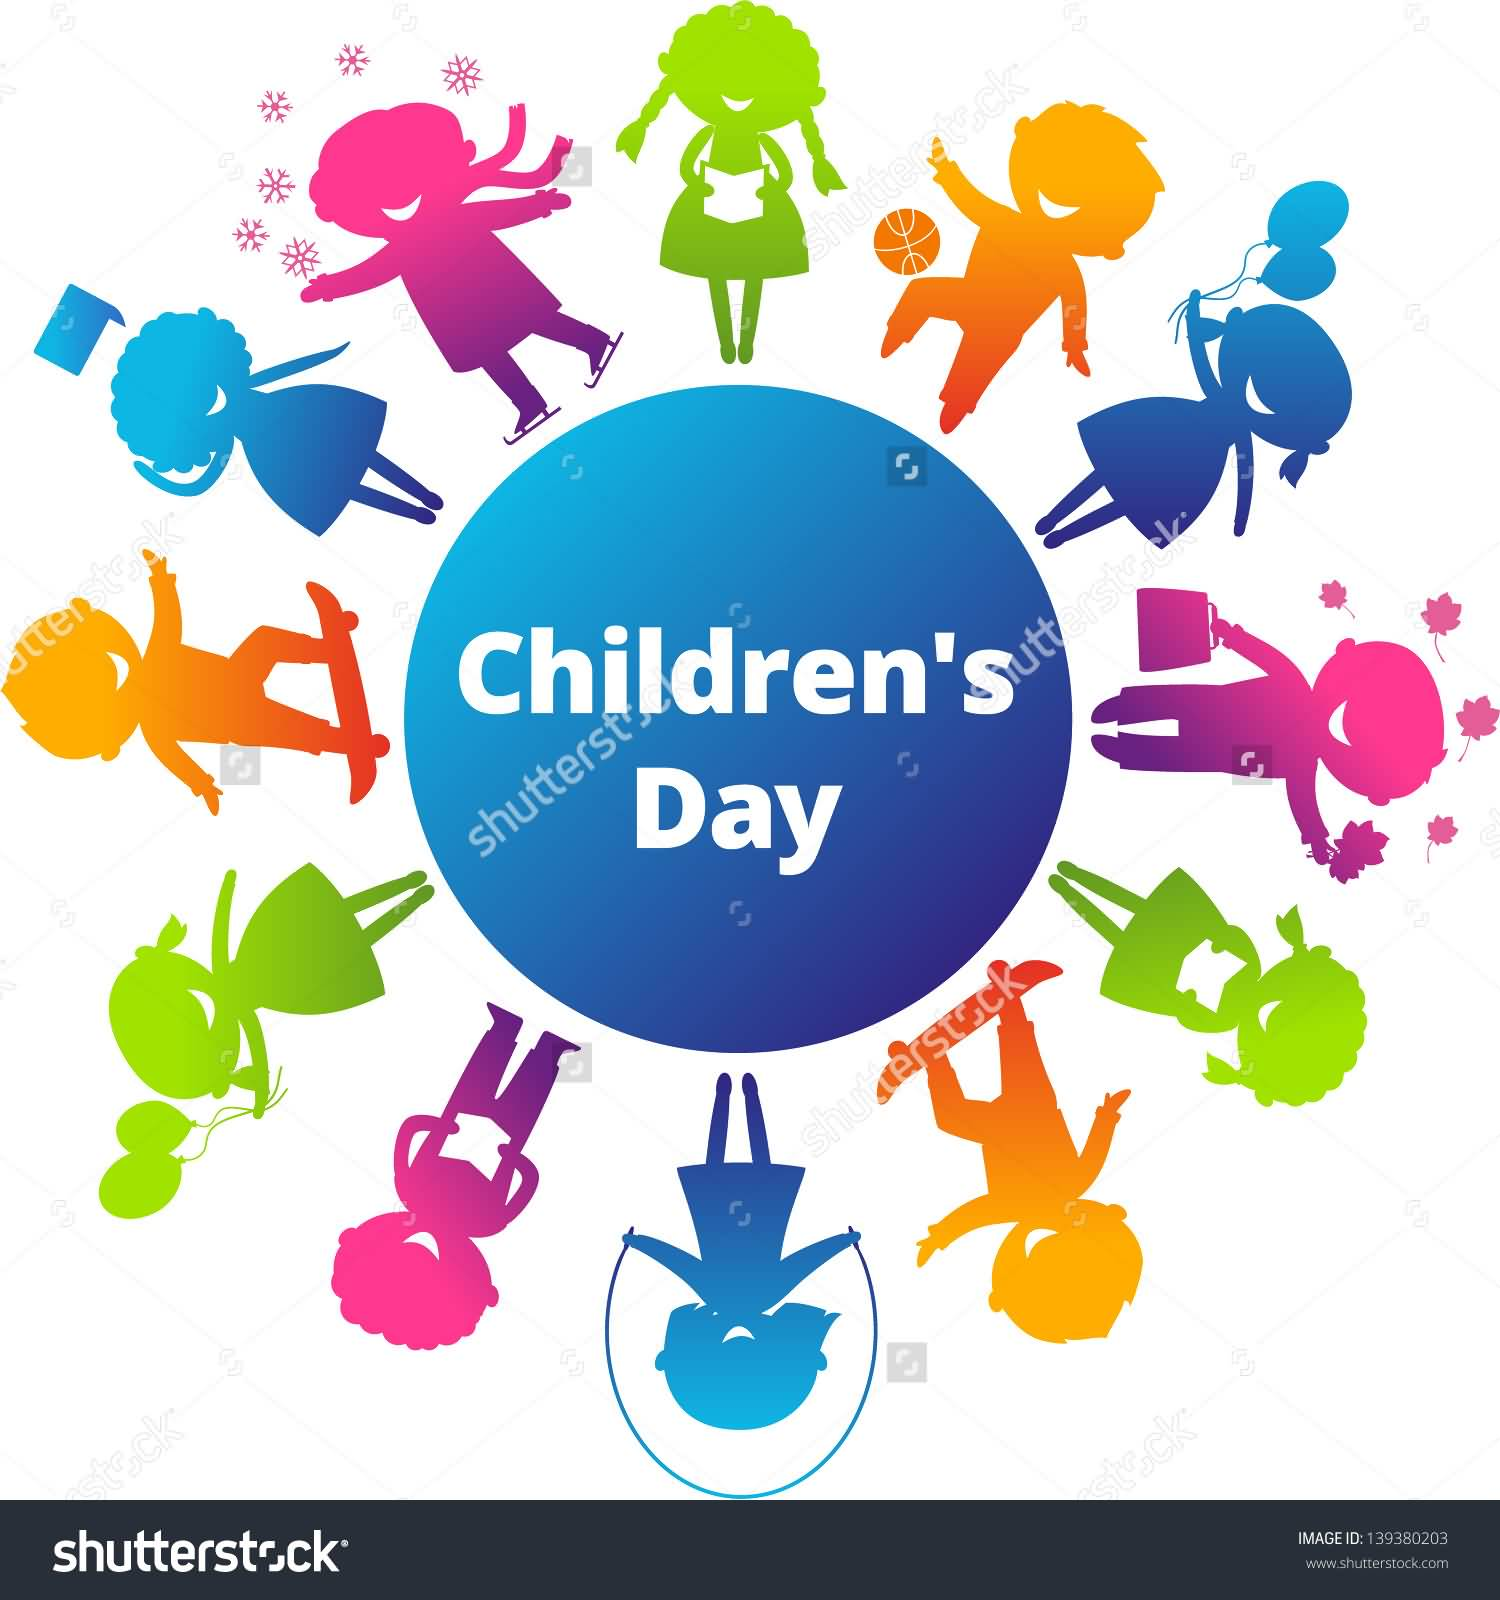 55 Very Beautiful Childrens Day Wish Images And Pictures